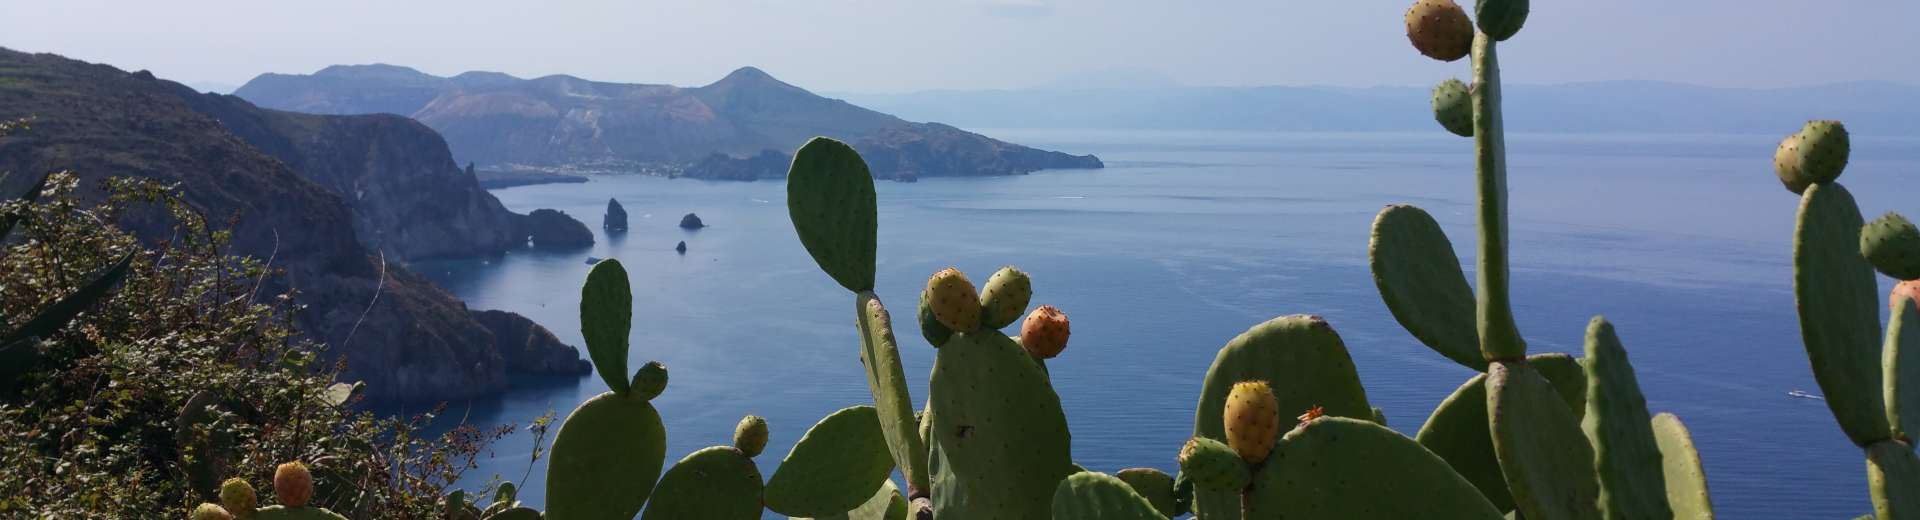 aeolian-islands-1301241©Pixabay.jpg